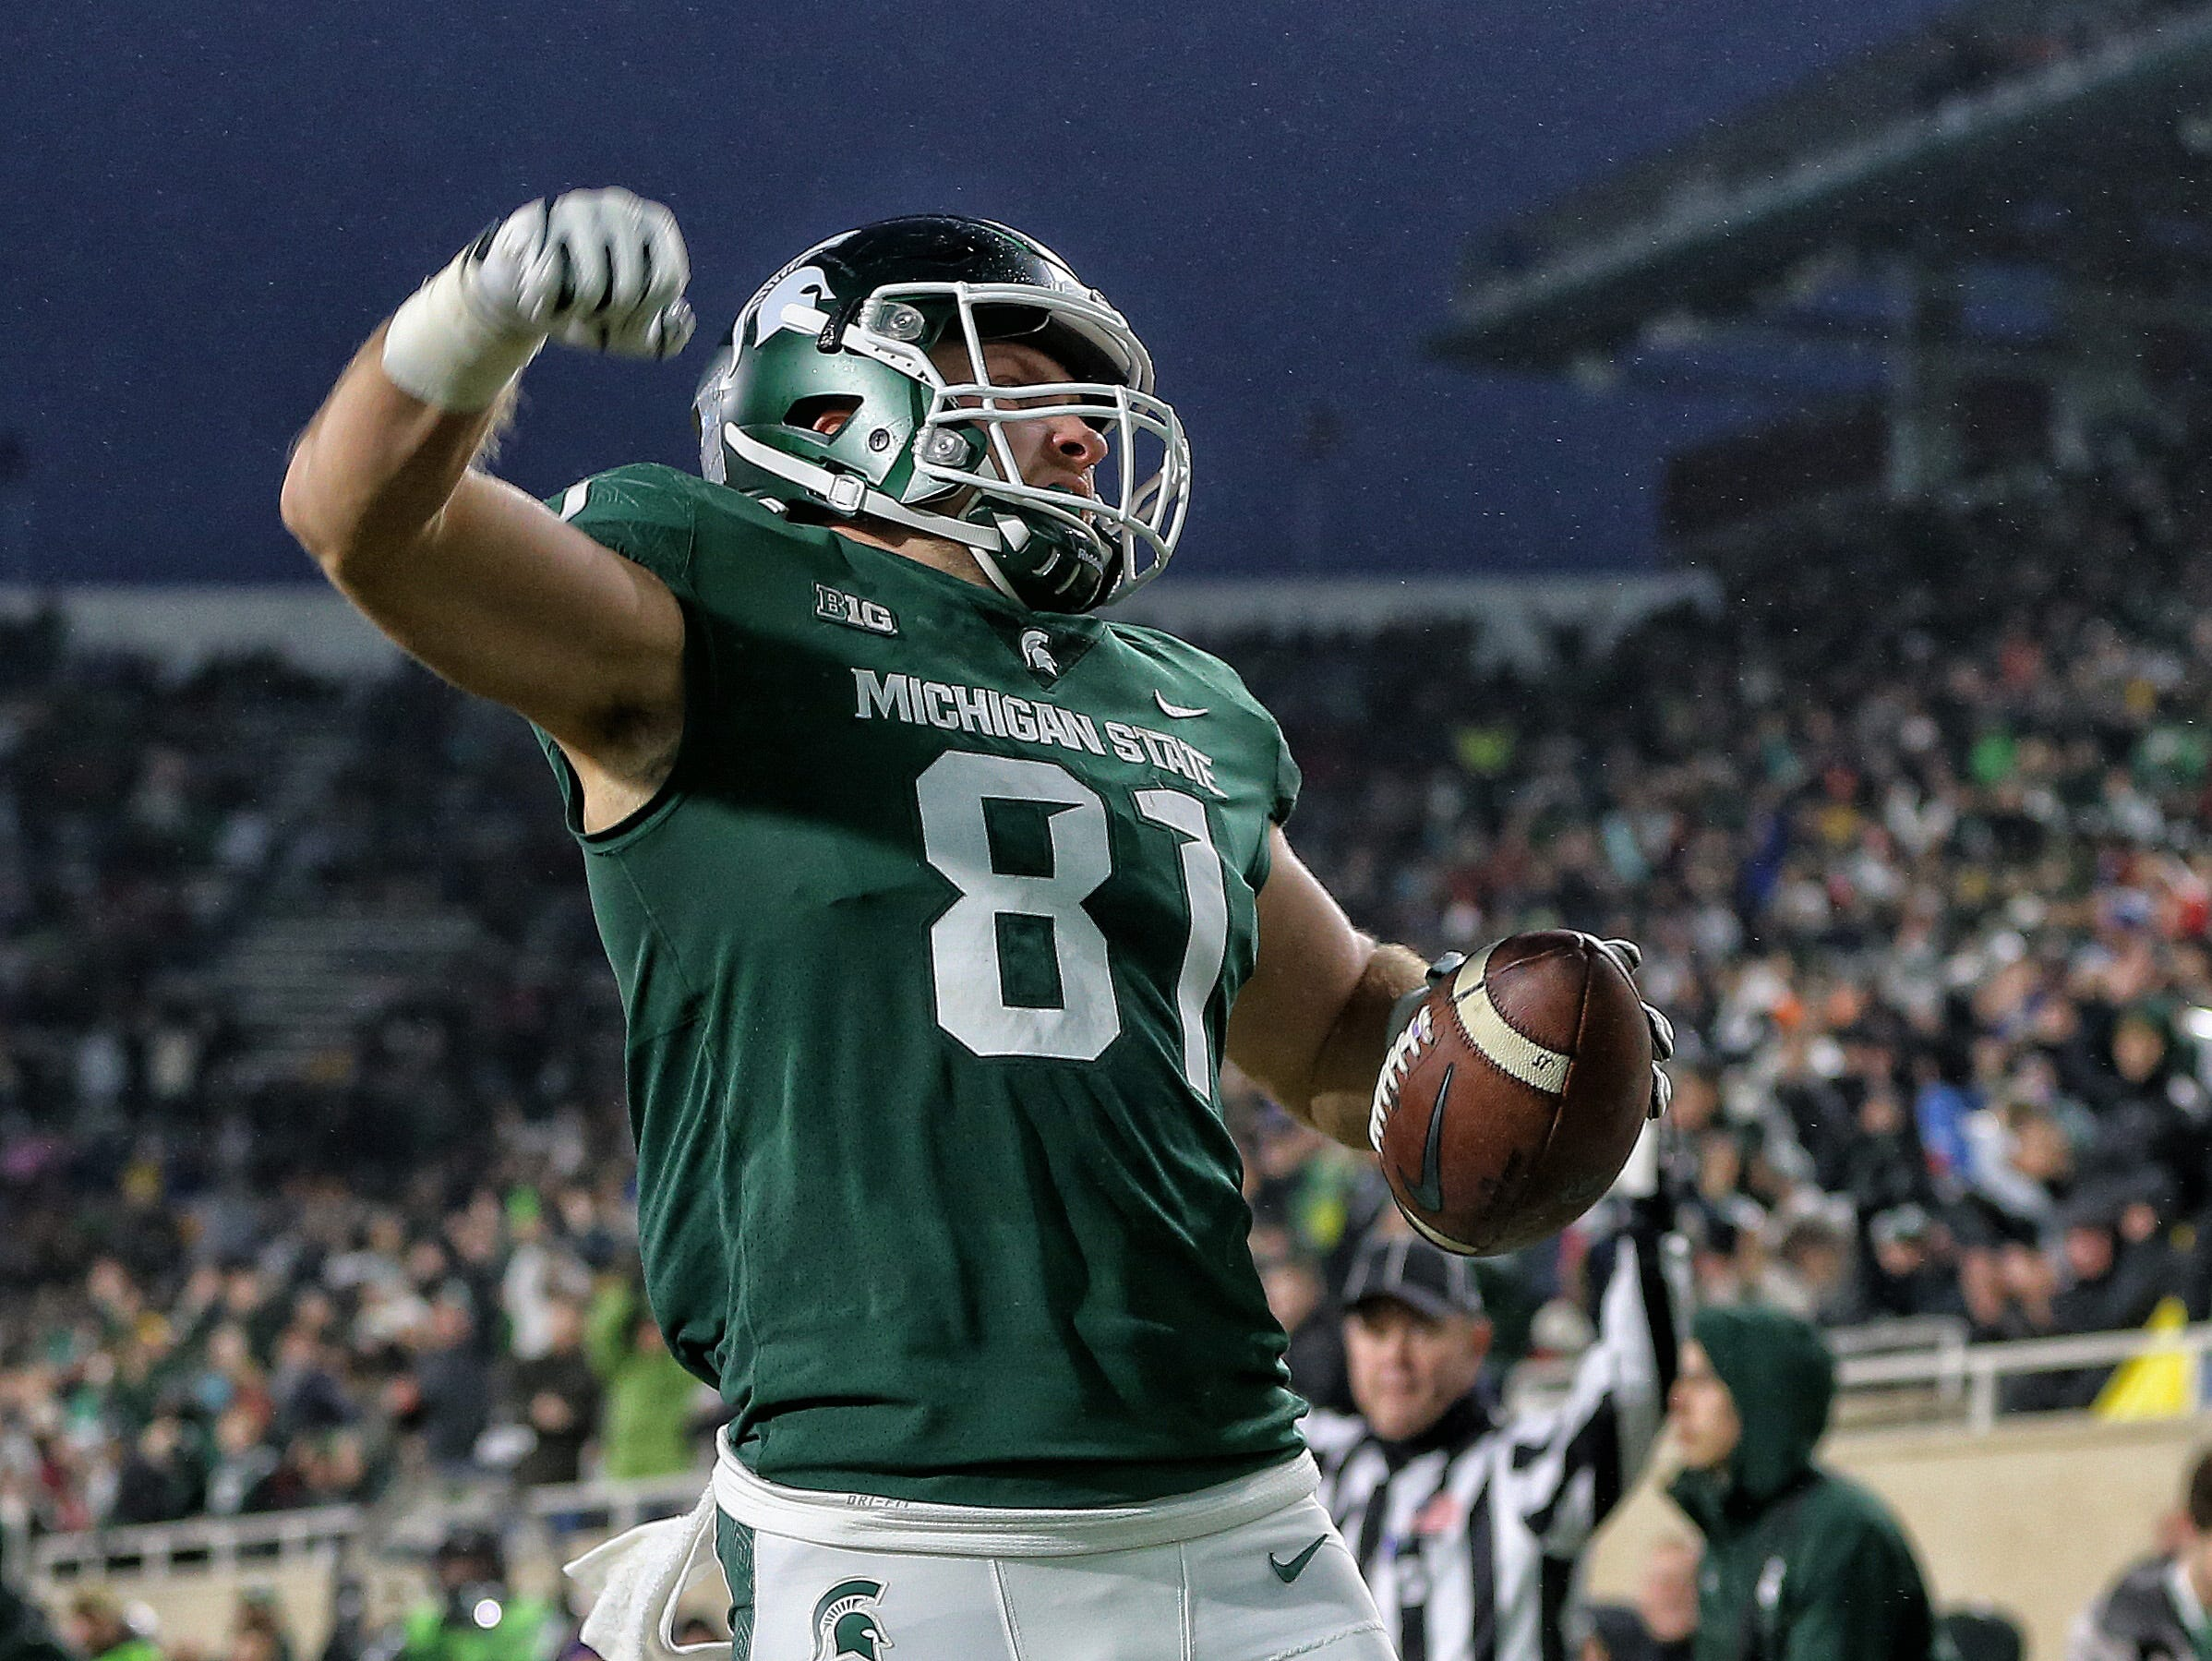 Nov 24, 2018; East Lansing, MI, USA; Michigan State Spartans tight end Matt Sokol (81) celebrates after a touchdown during the first half against the Rutgers Scarlet Knights at Spartan Stadium. Mandatory Credit: Mike Carter-USA TODAY Sports